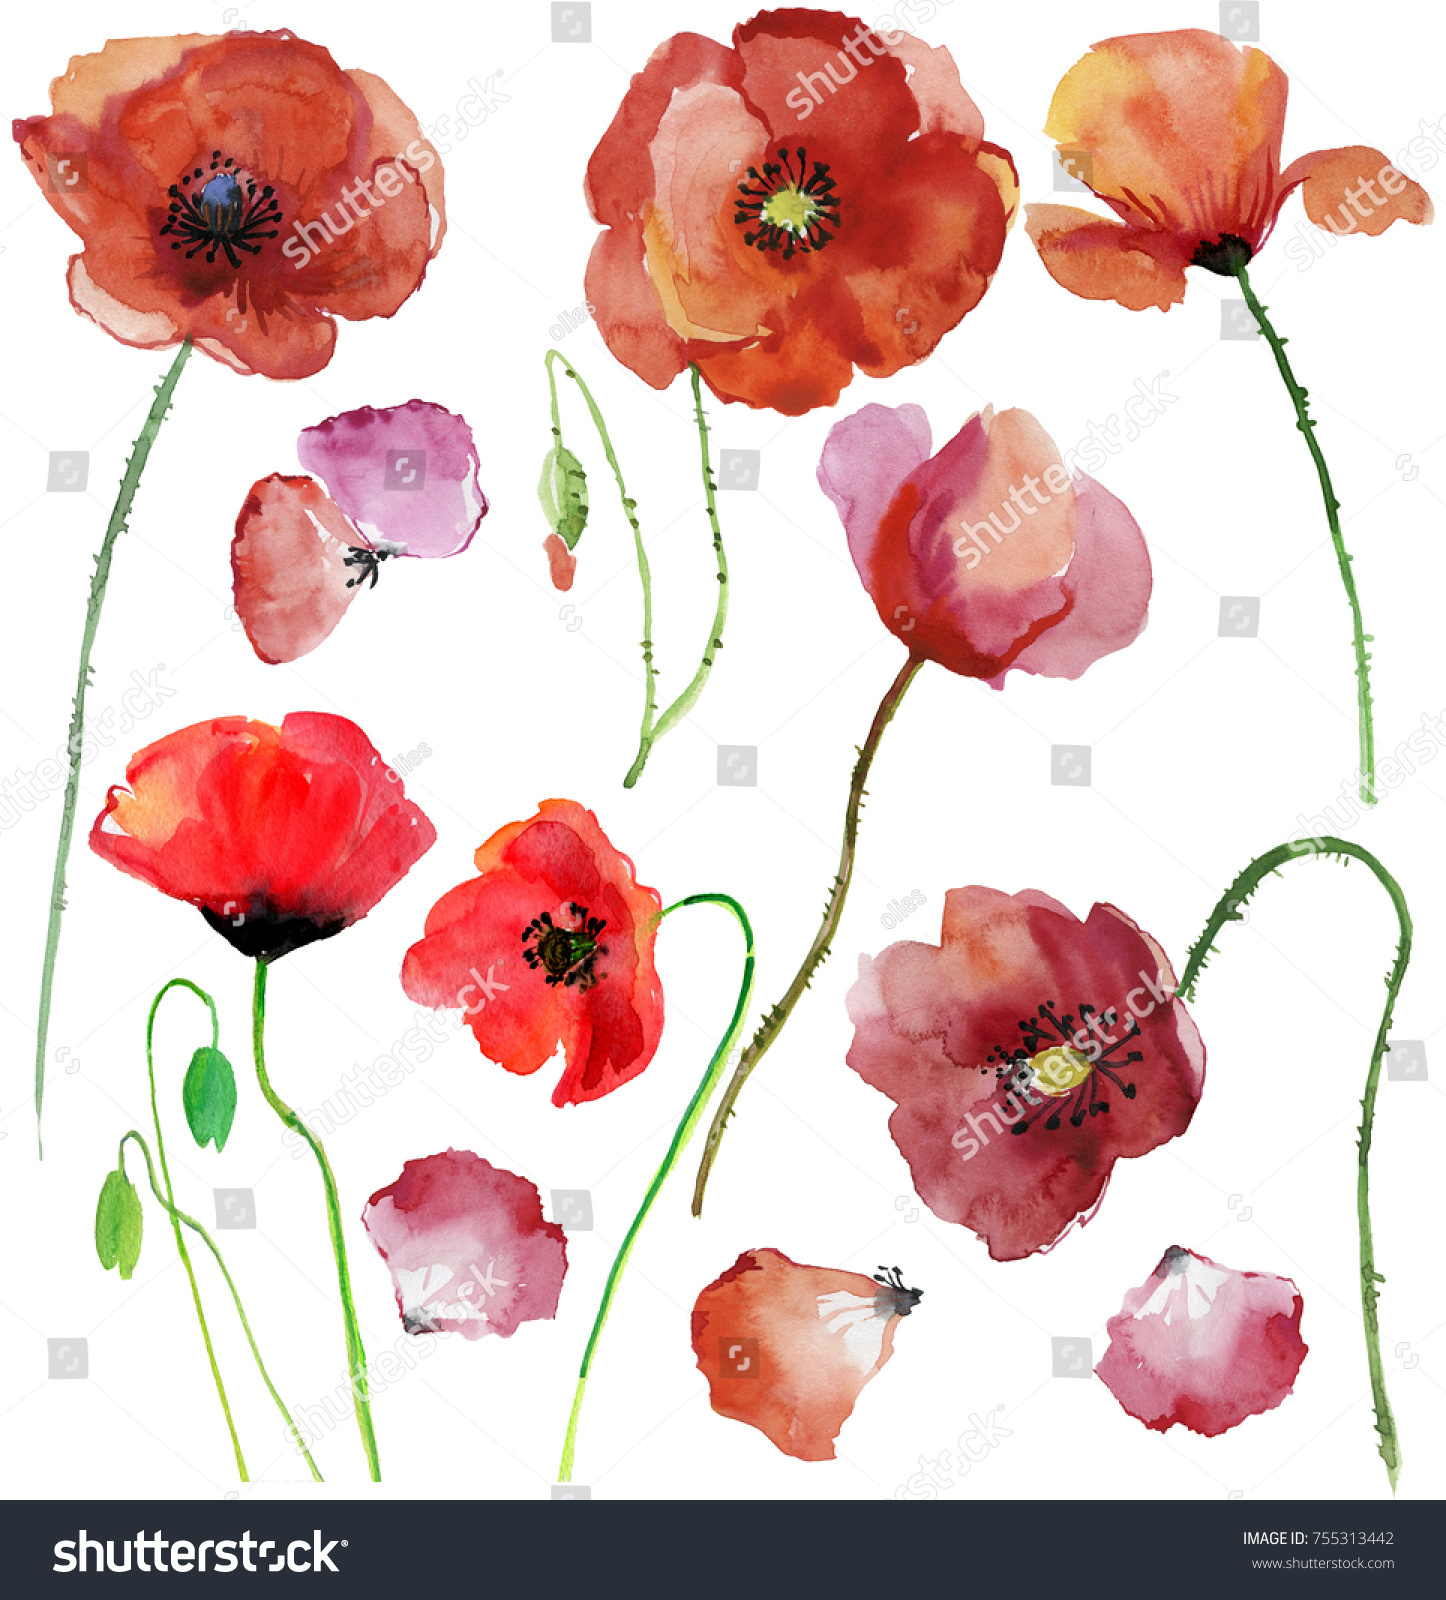 Watercolor Illustration Botanical Flowers Petals Drawing Stock